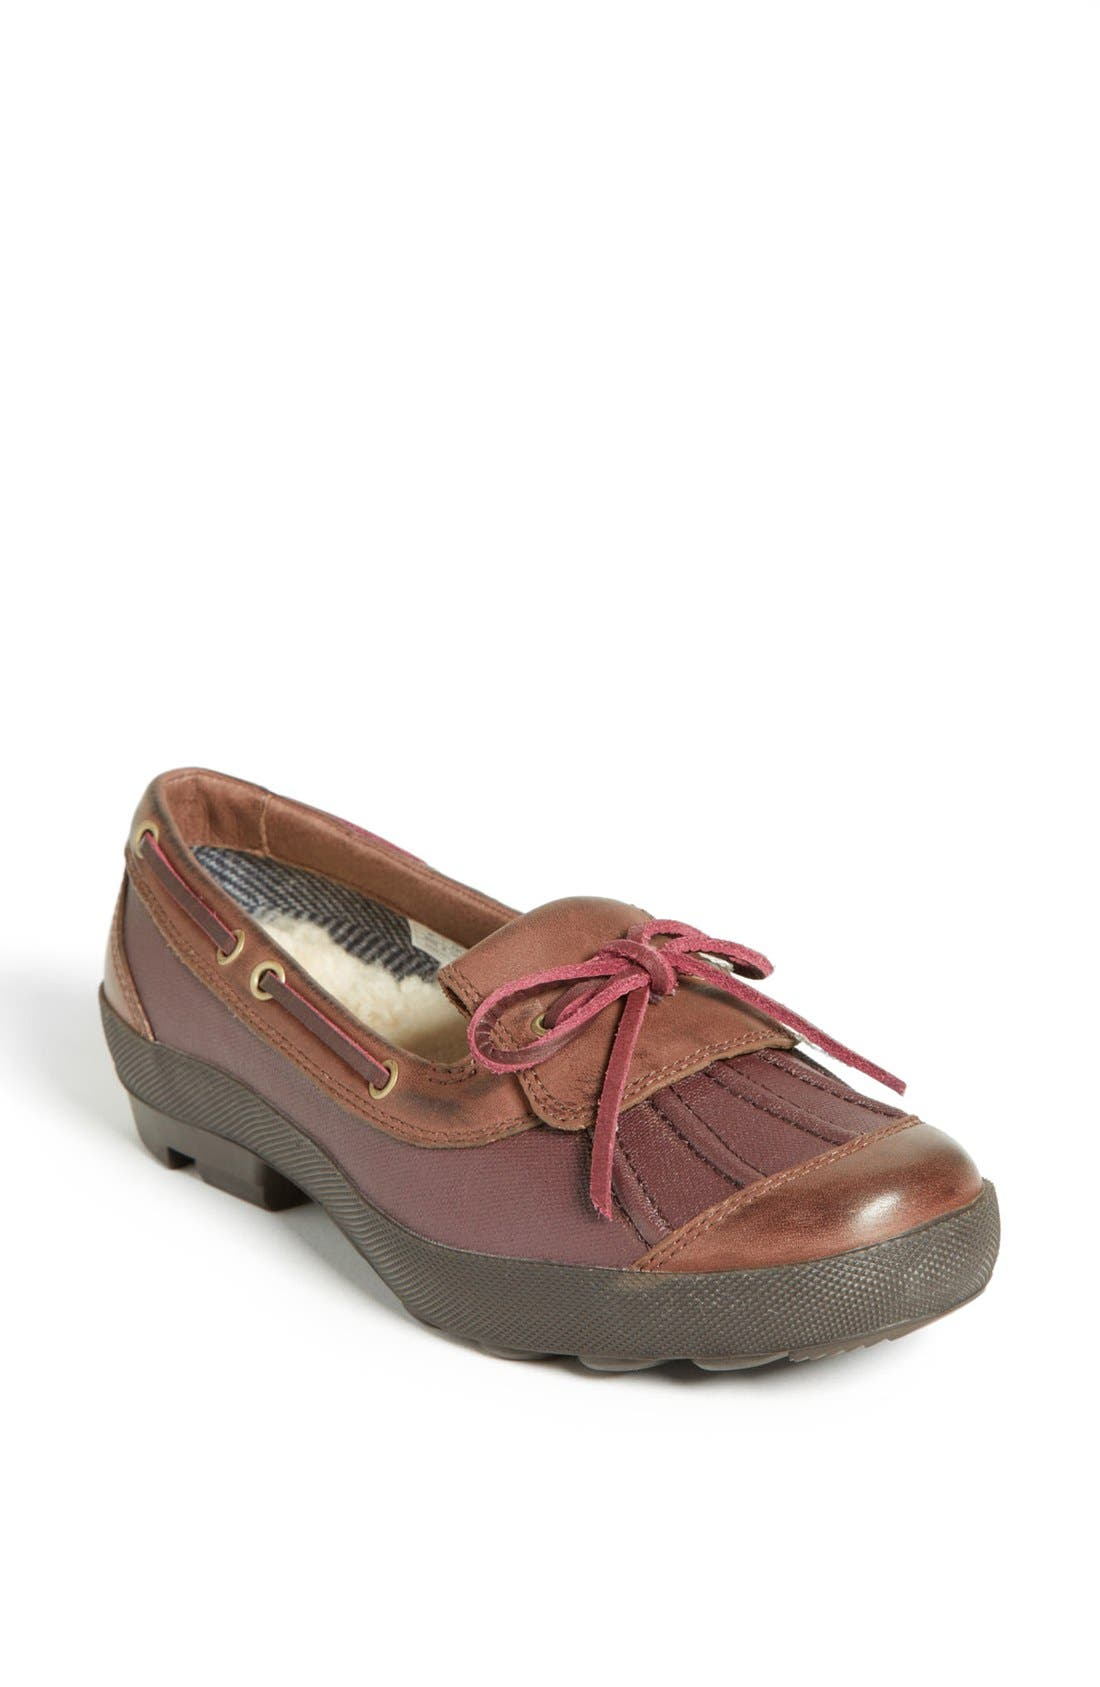 Alternate Image 1 Selected - UGG ASHDALE DUCK SHOE